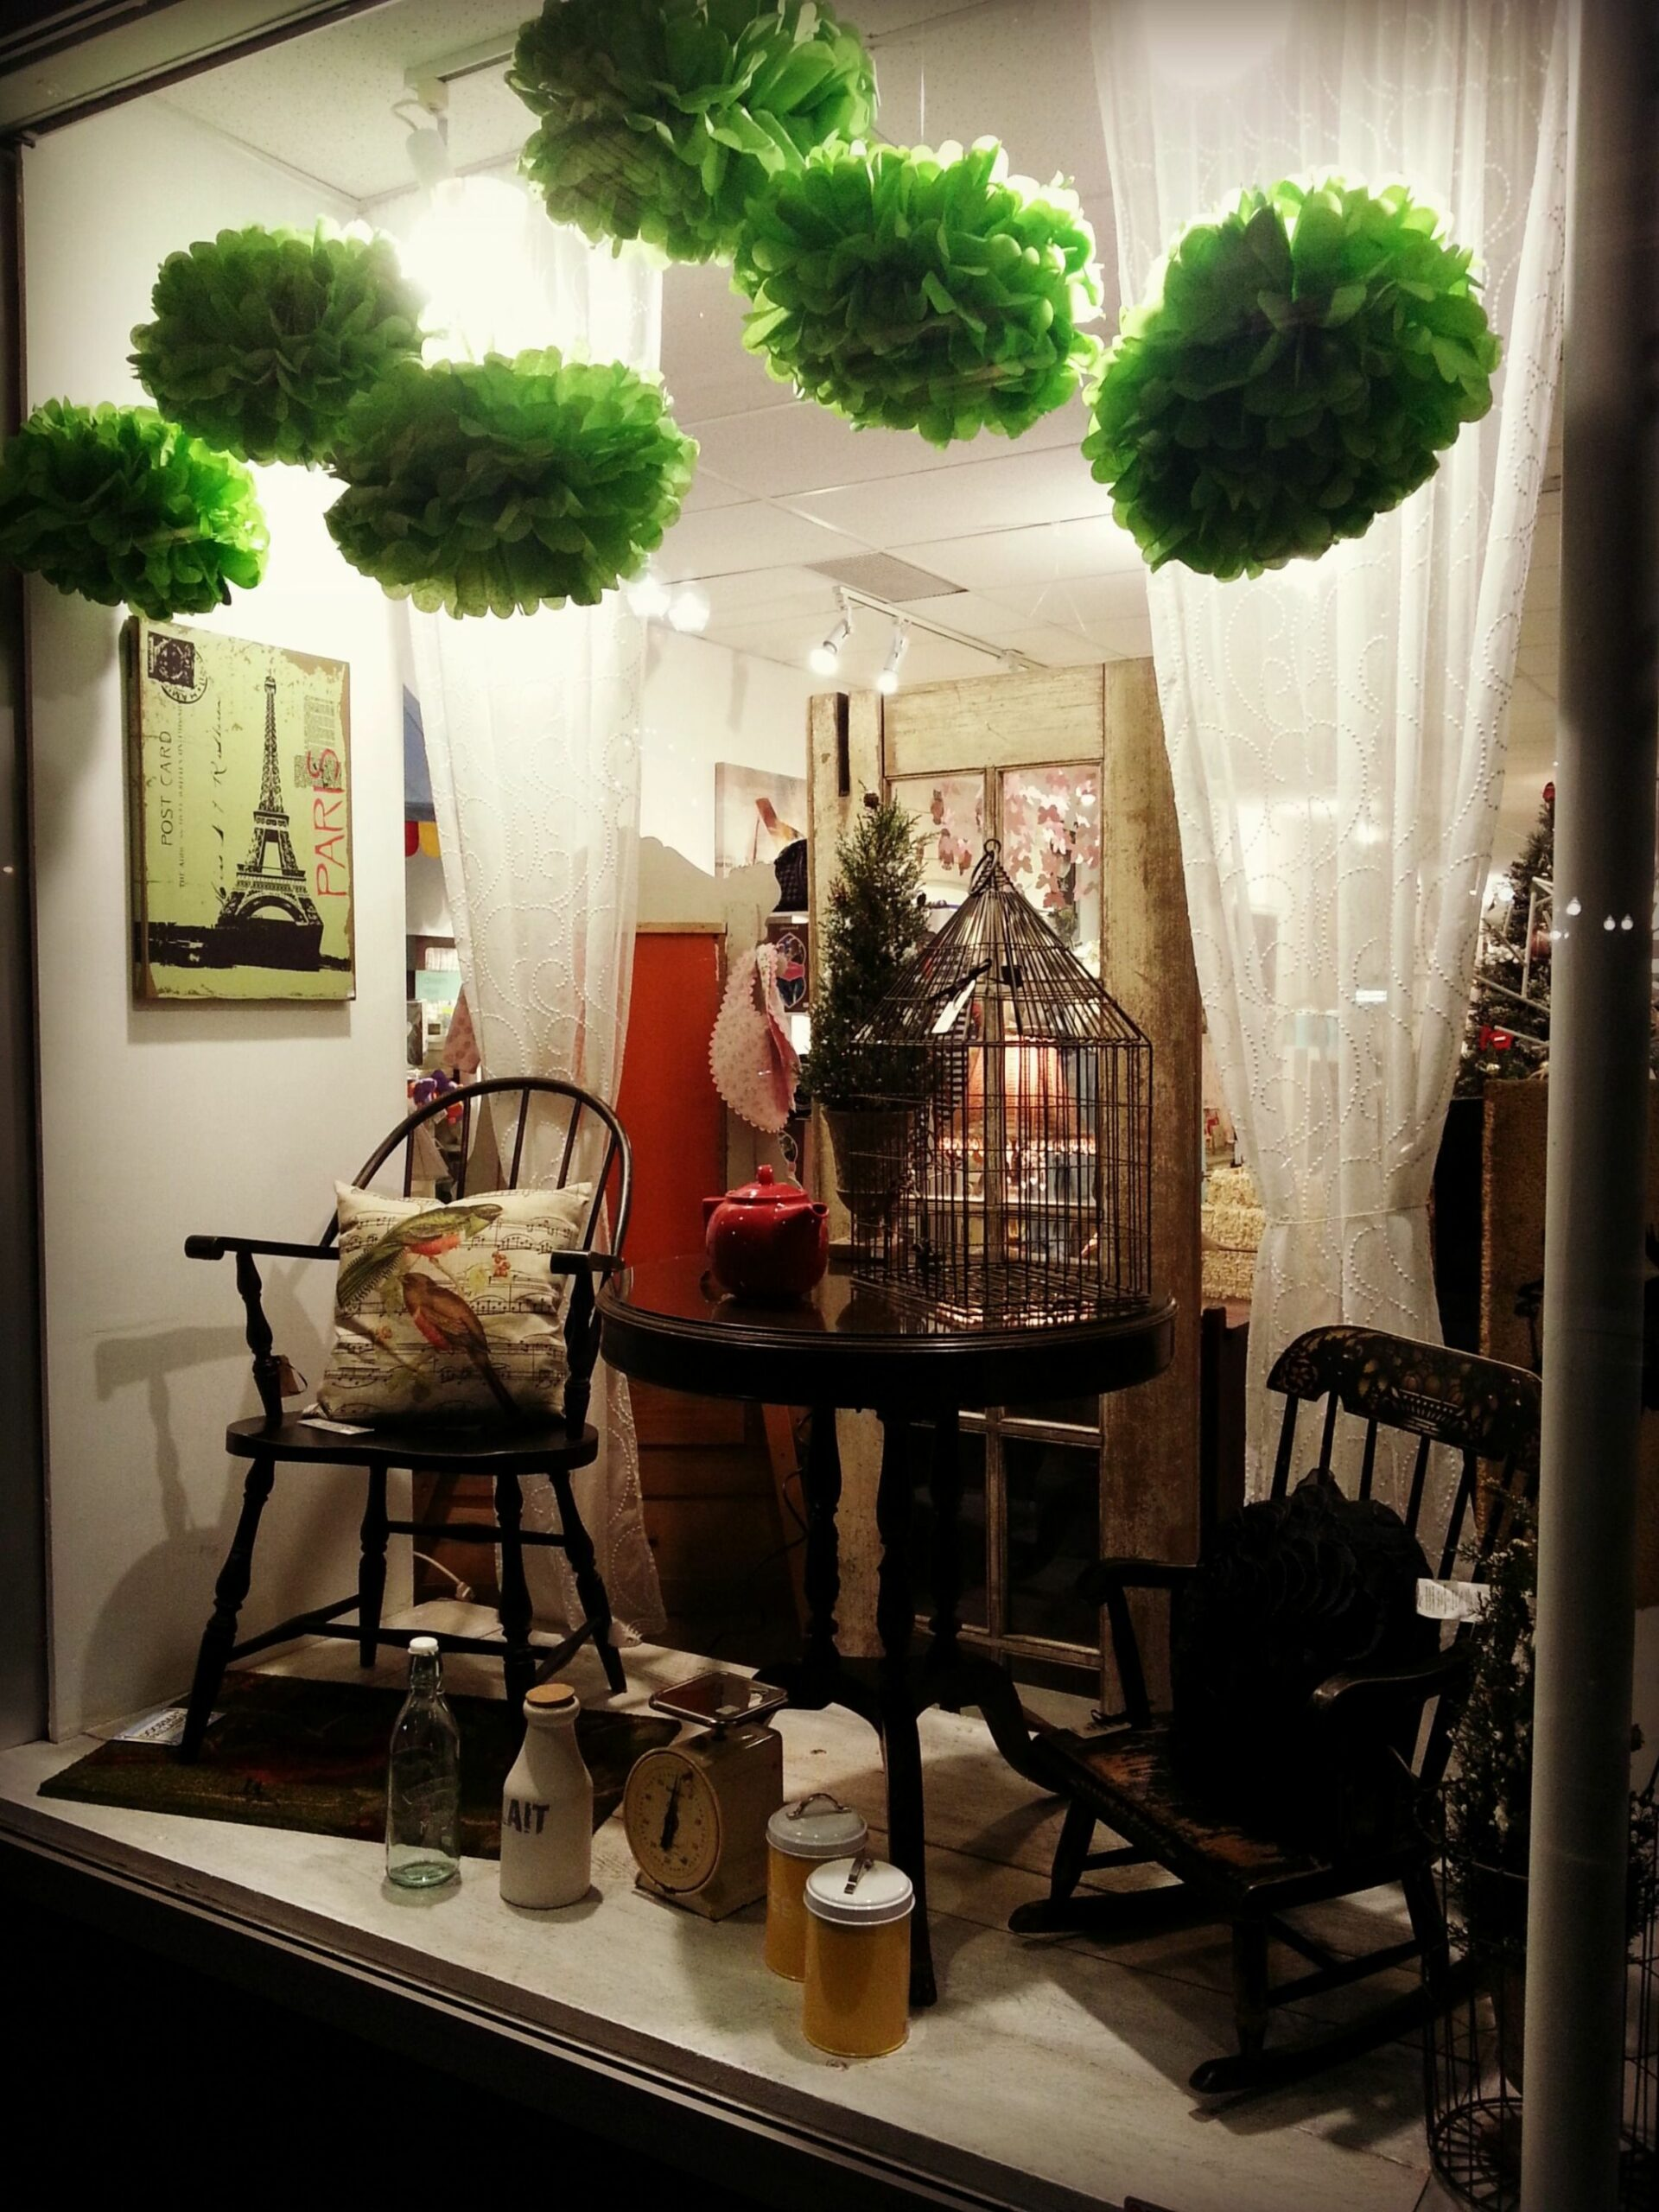 Our January window display! (With images) | Store window displays ..